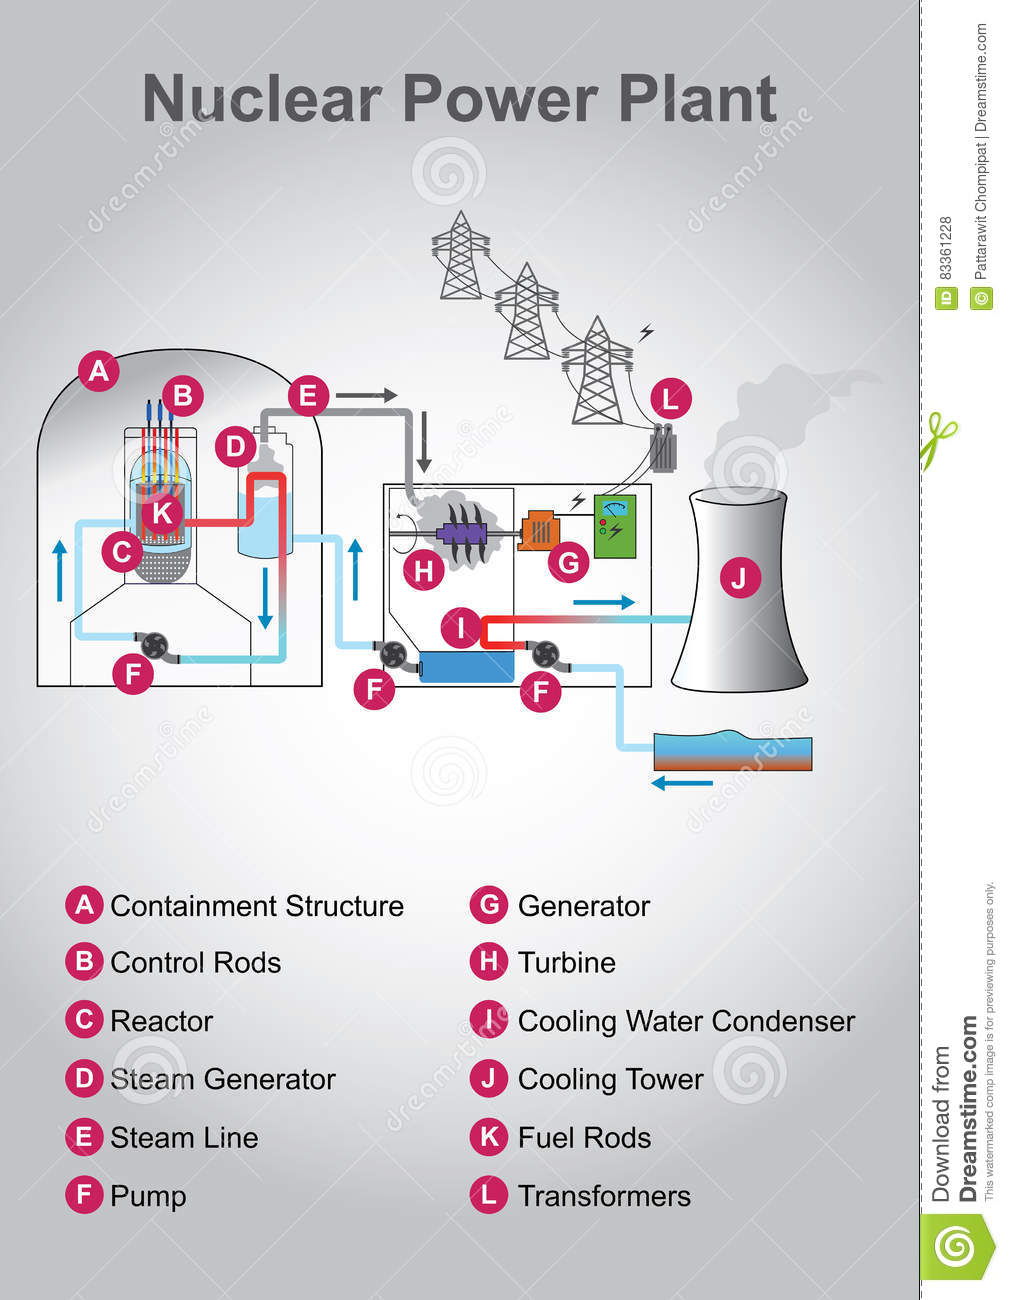 hight resolution of nuclear diagram education infographic vector design